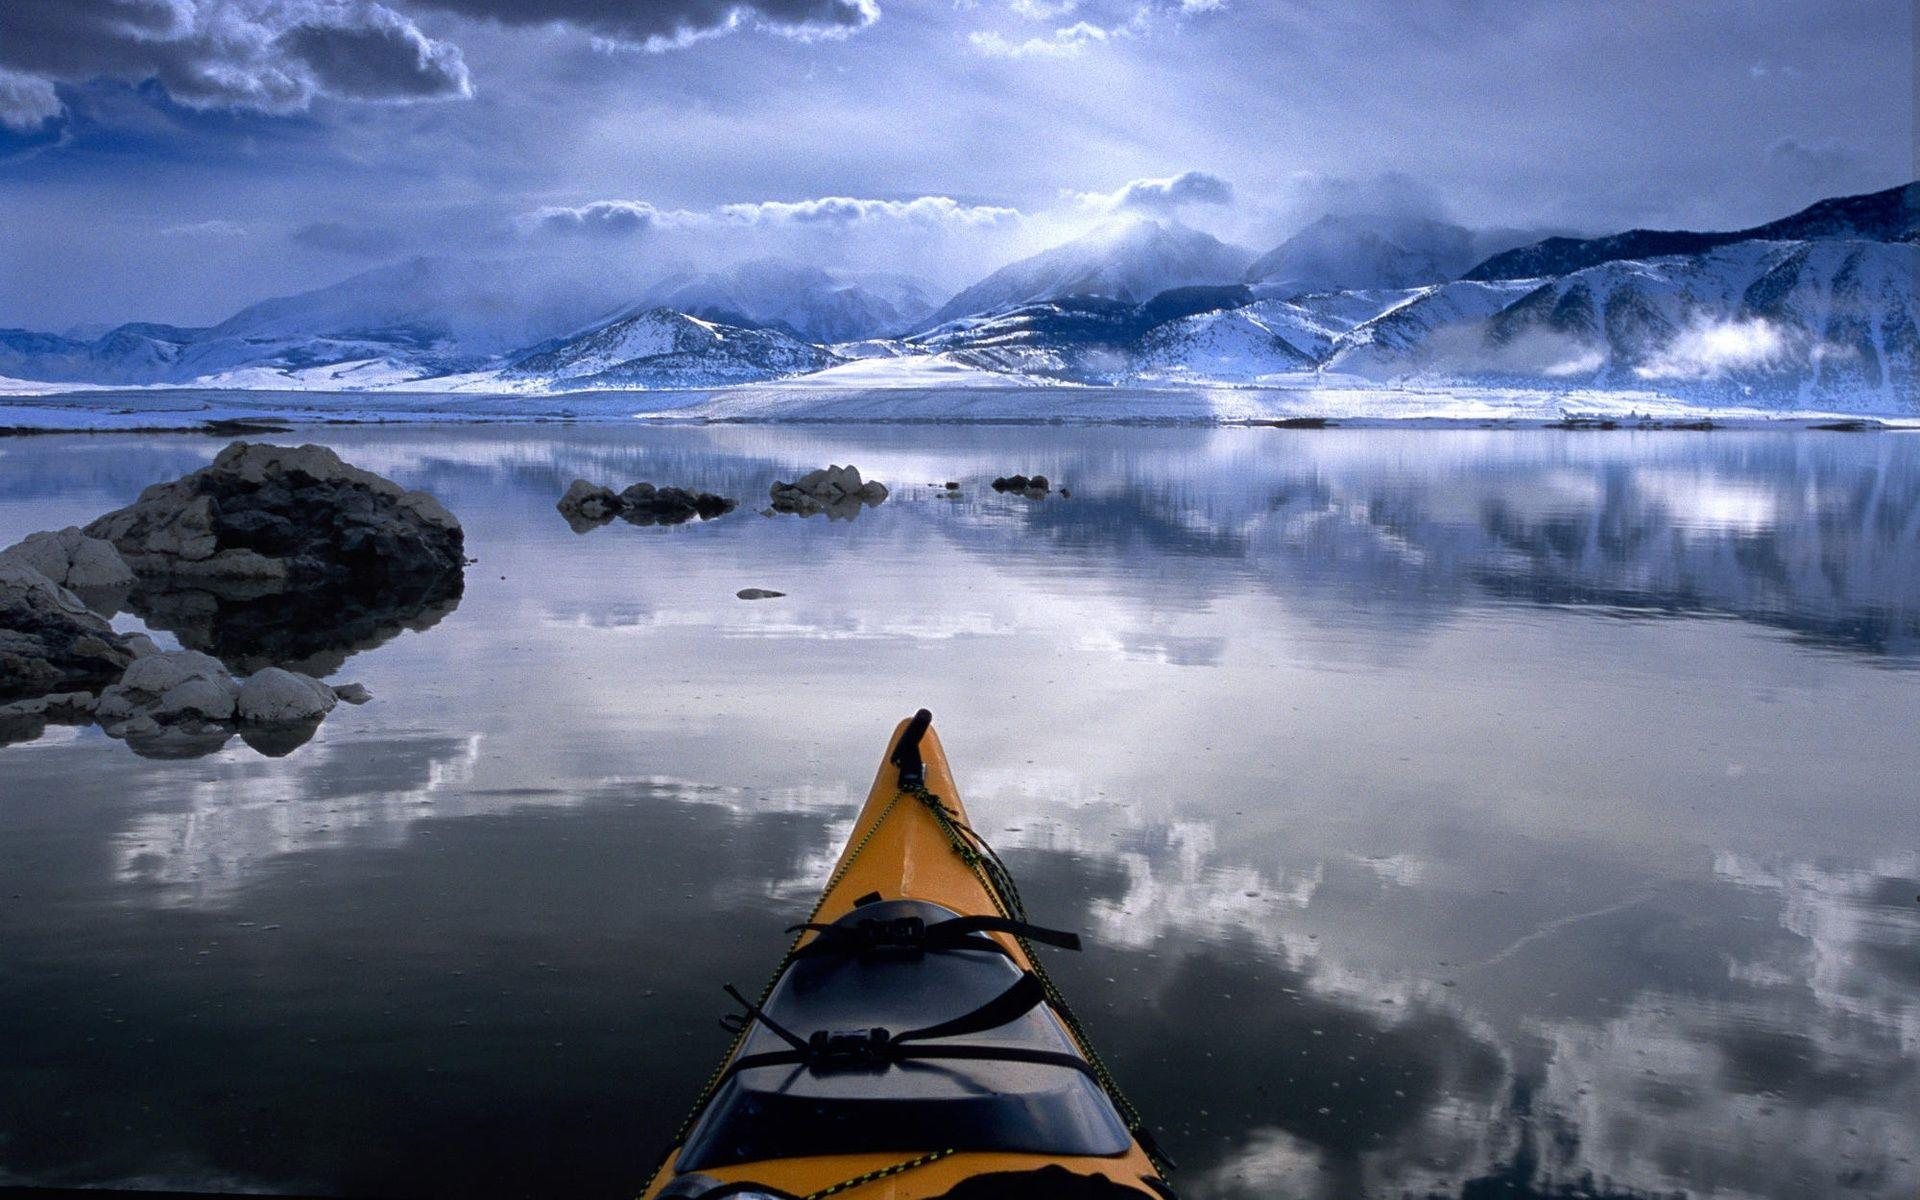 Canoe in Cold Alaska Wallpapers and Photo